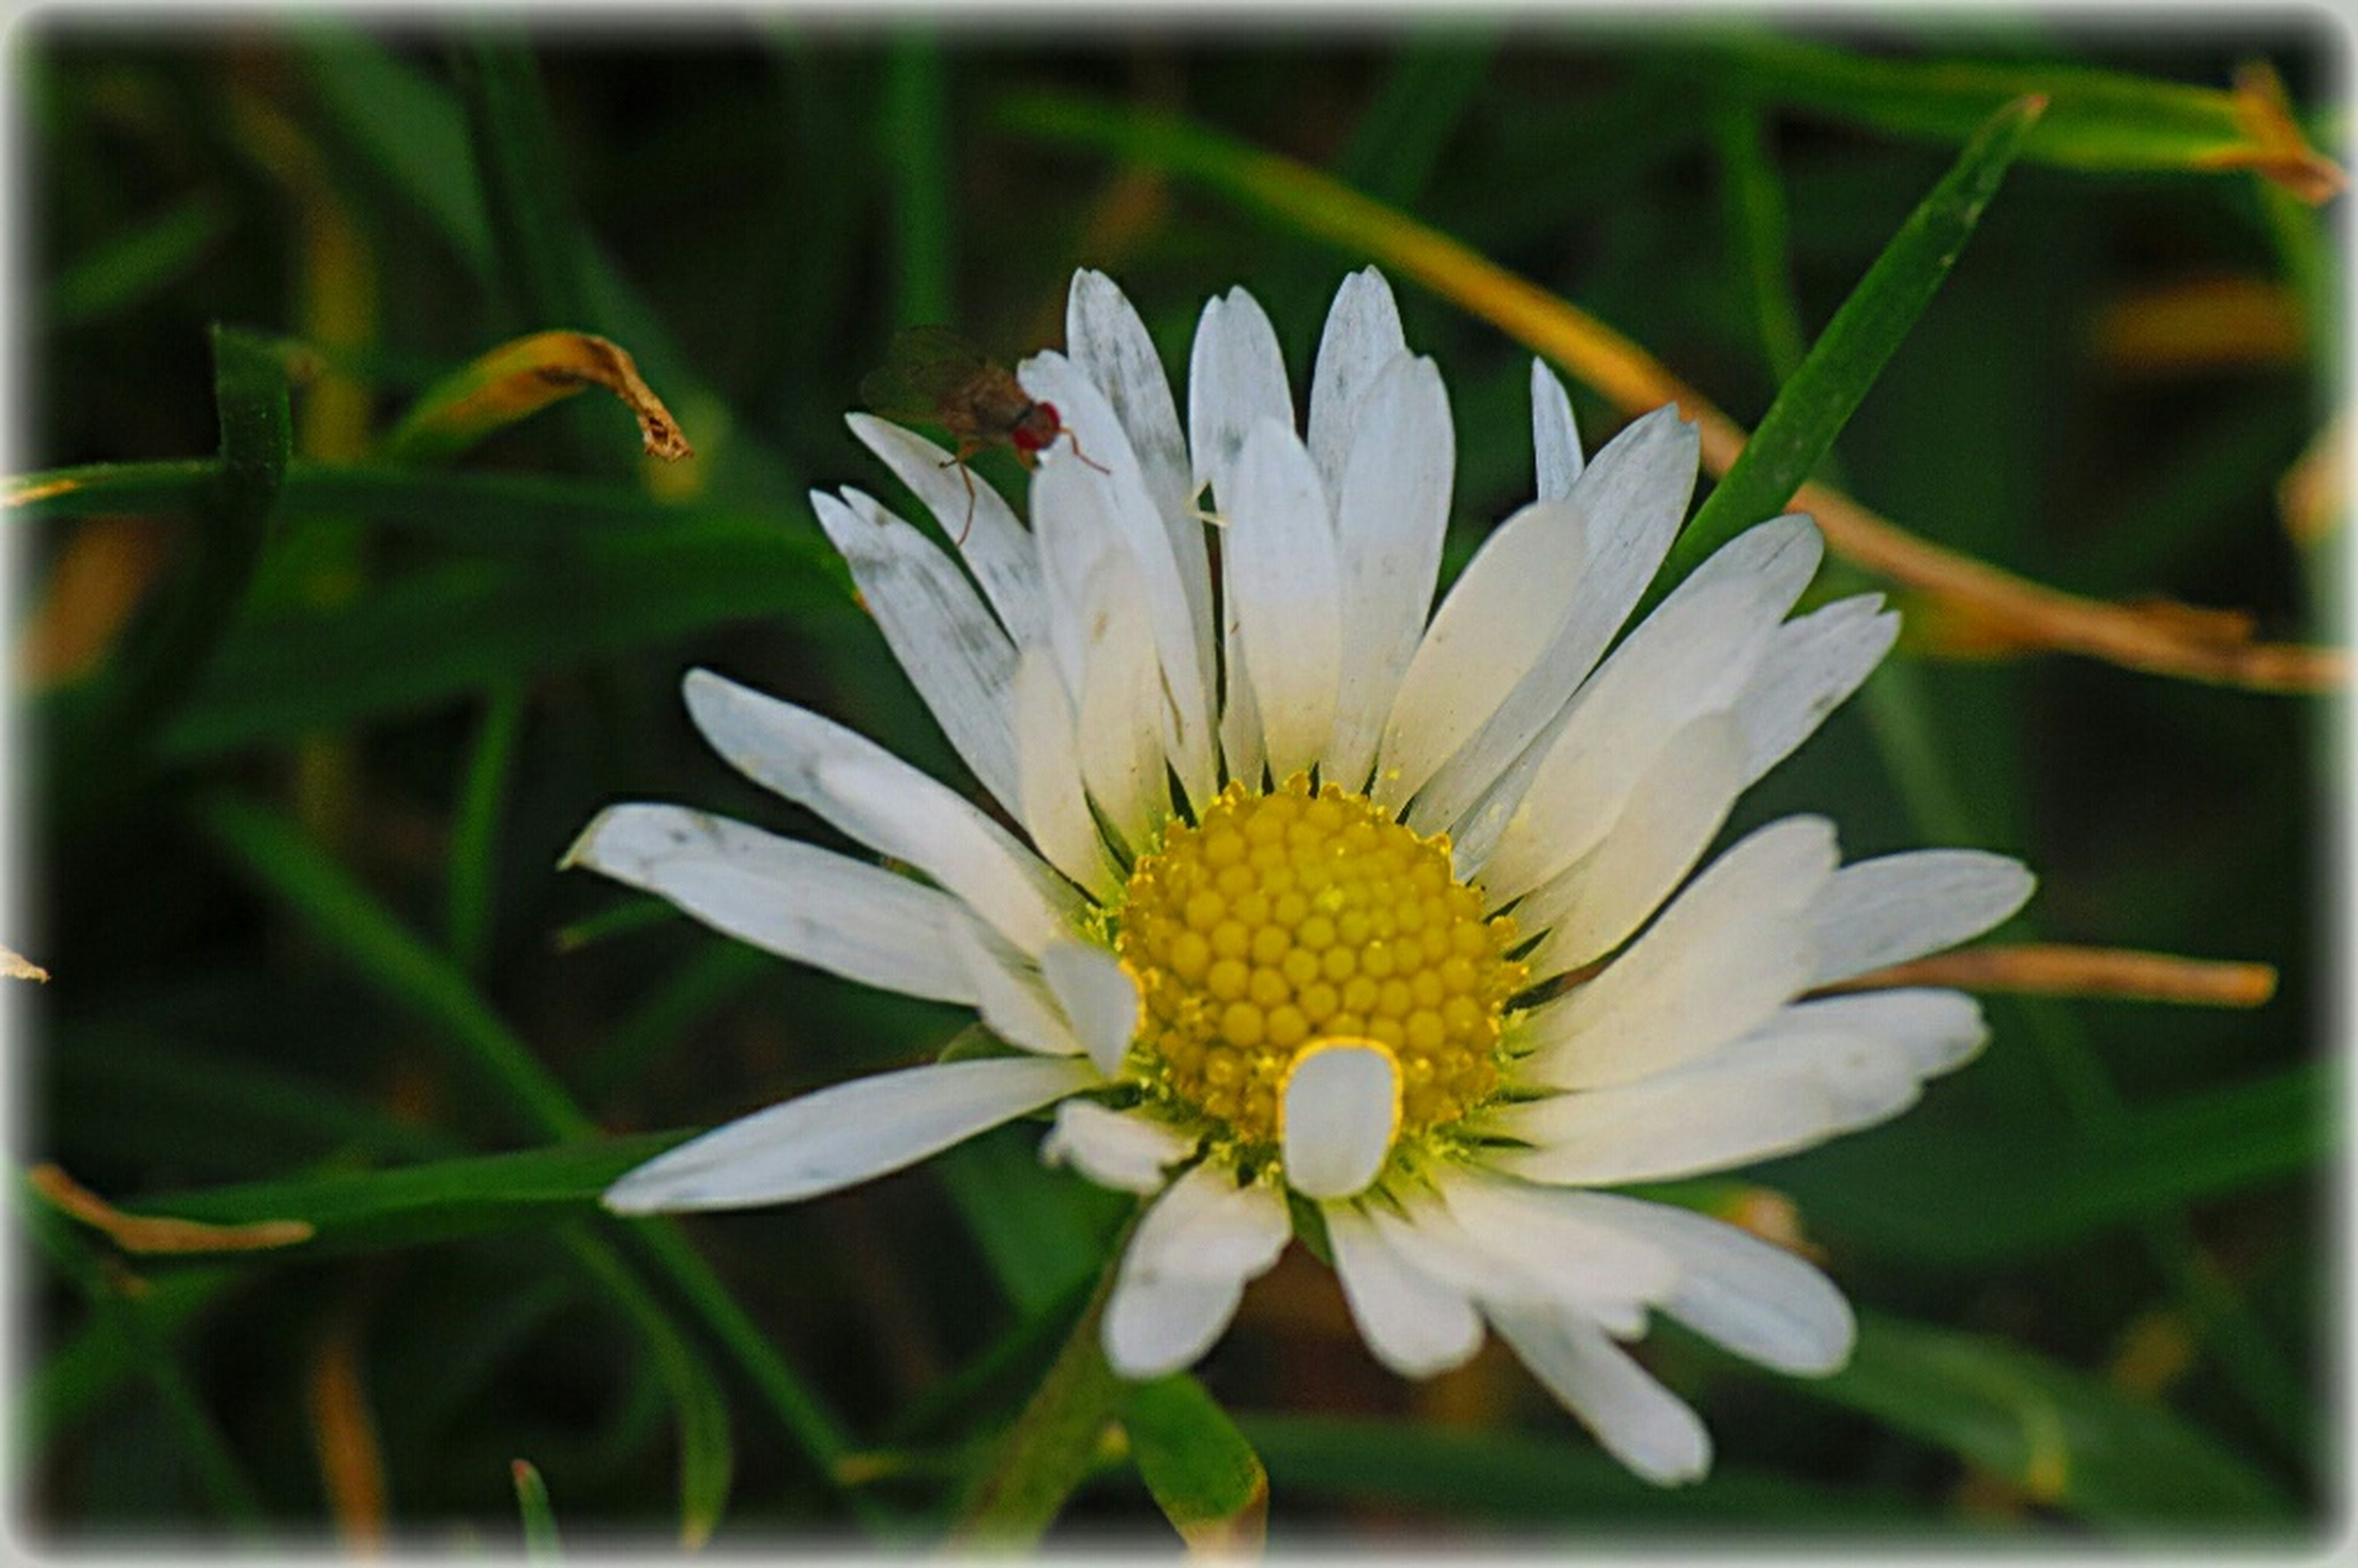 flower, petal, flower head, freshness, fragility, transfer print, growth, close-up, beauty in nature, white color, pollen, blooming, single flower, focus on foreground, auto post production filter, nature, plant, yellow, daisy, in bloom